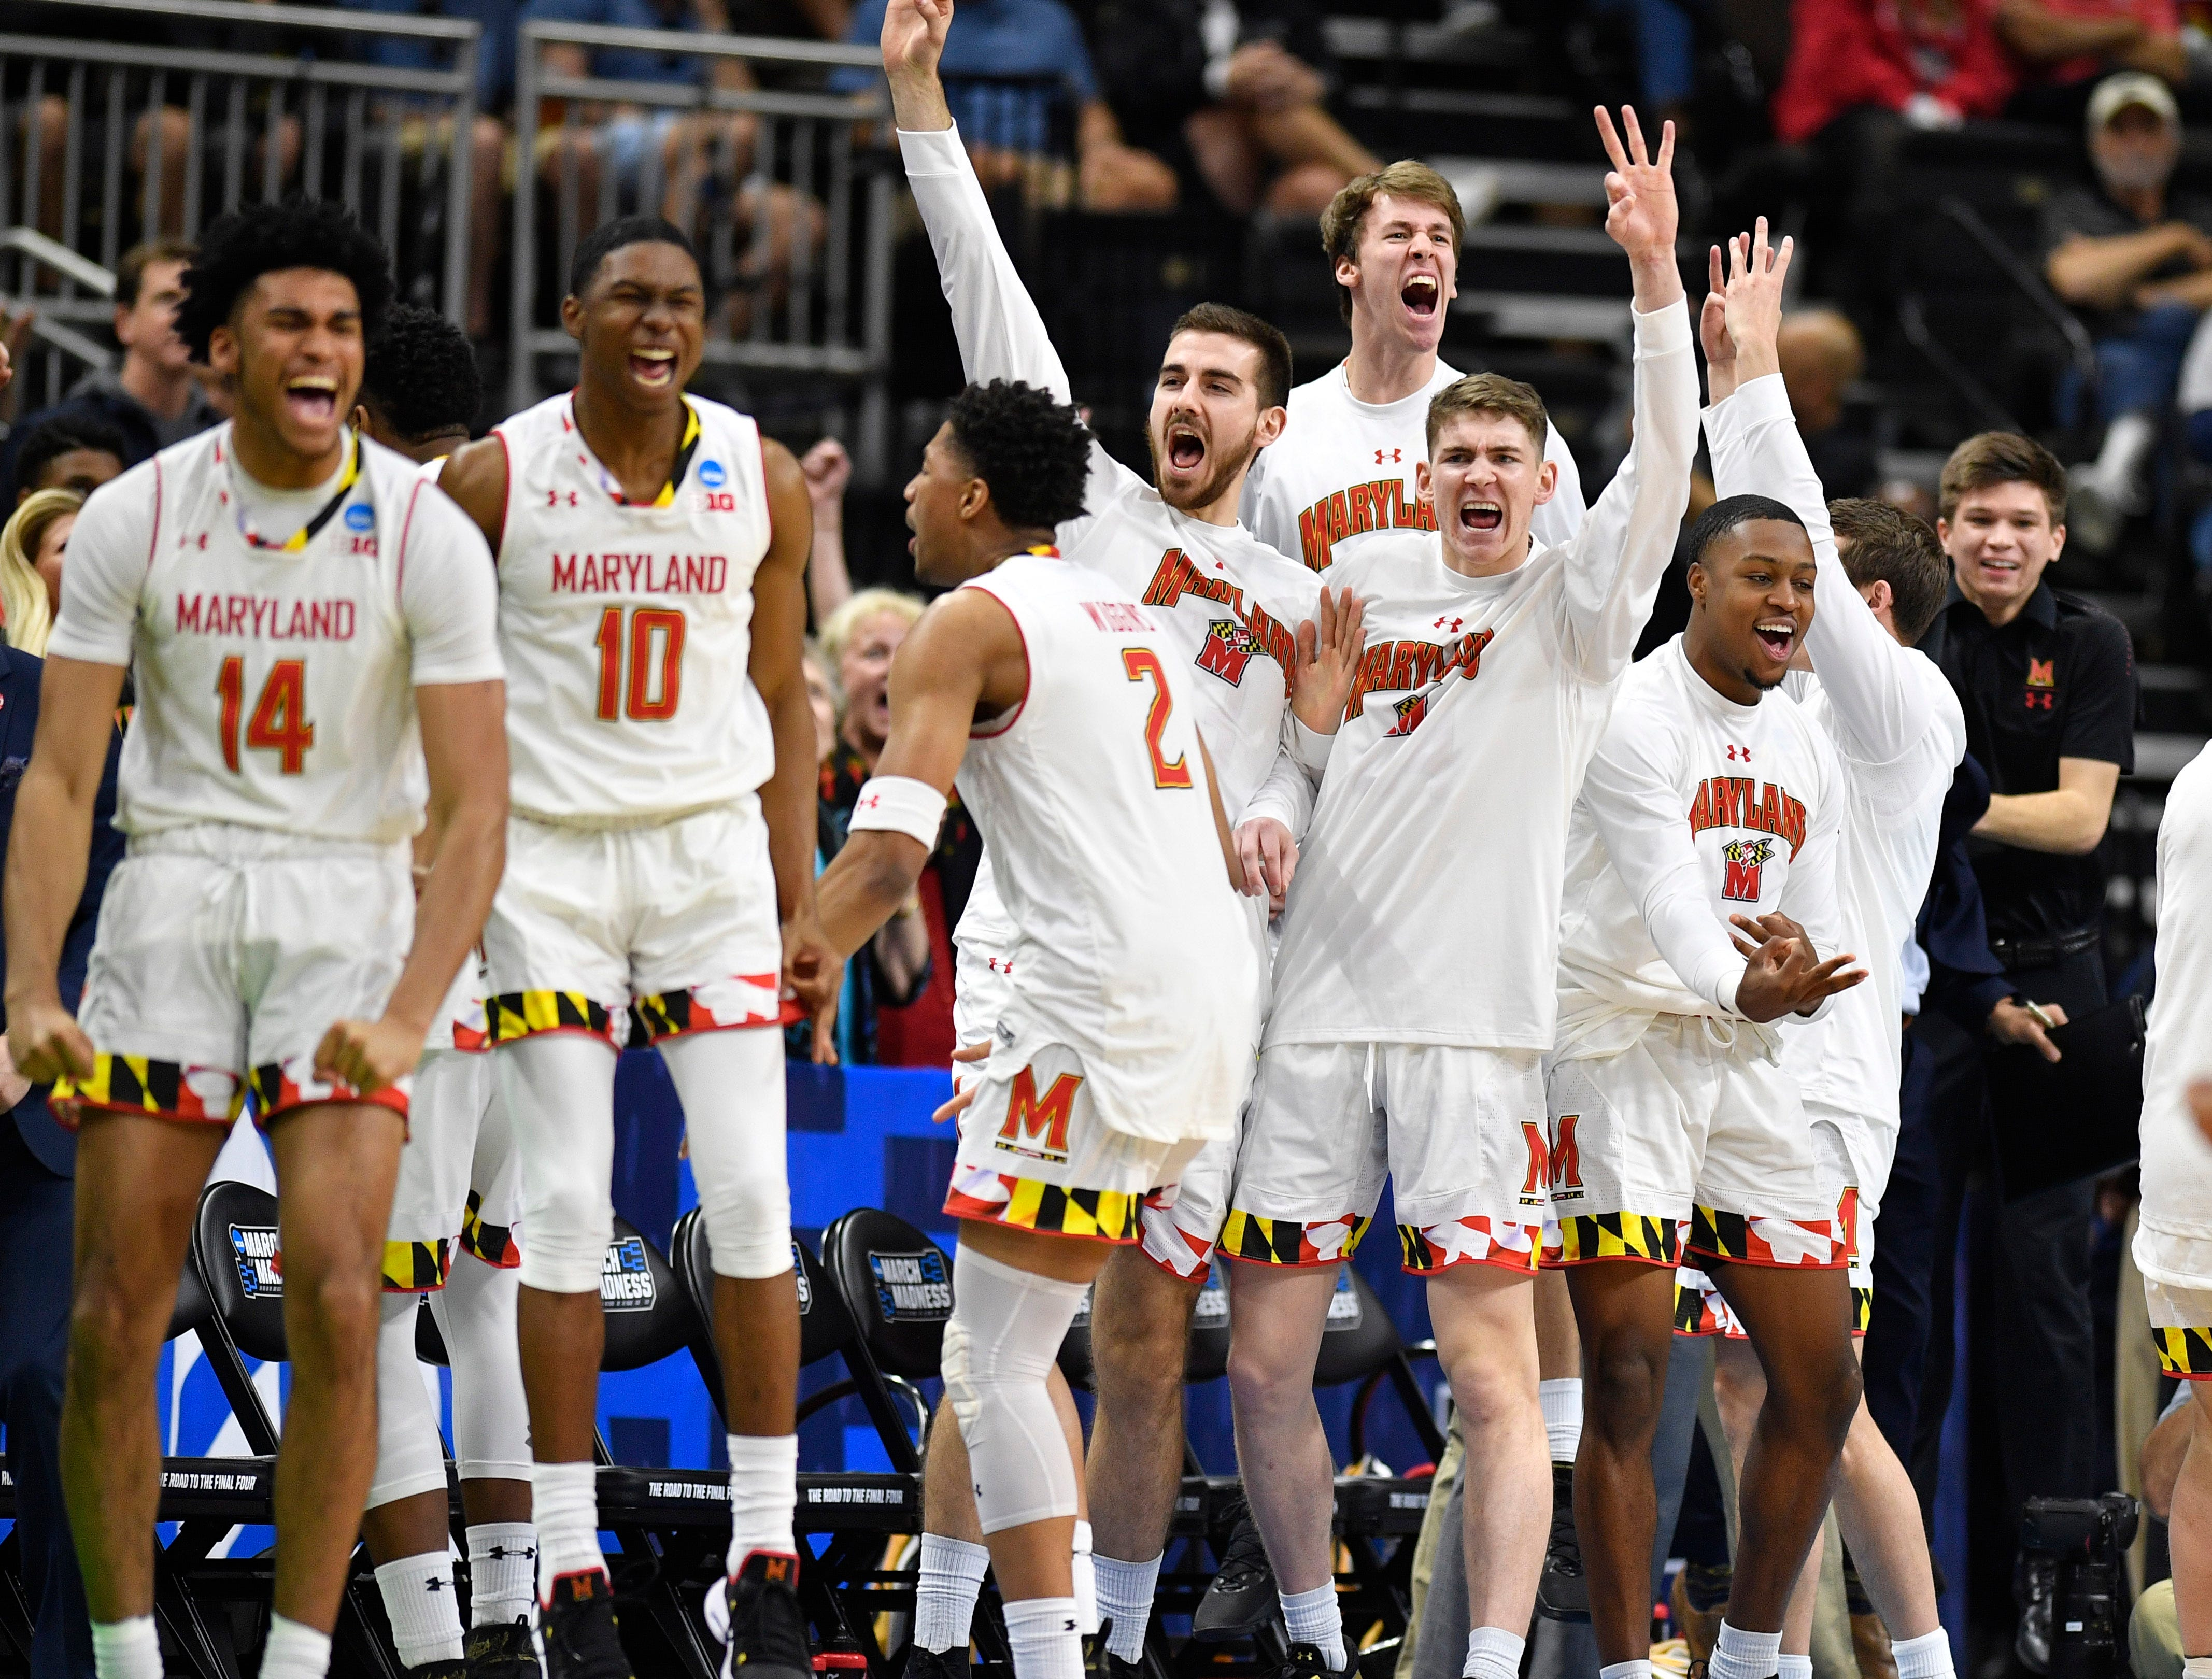 Maryland's bench reacts to a basket during the second half of the first-round NCAA college basketball tournament game against Belmont at VyStar Veterans Memorial Arena in Jacksonville, Fla., Thursday, March 21, 2019.